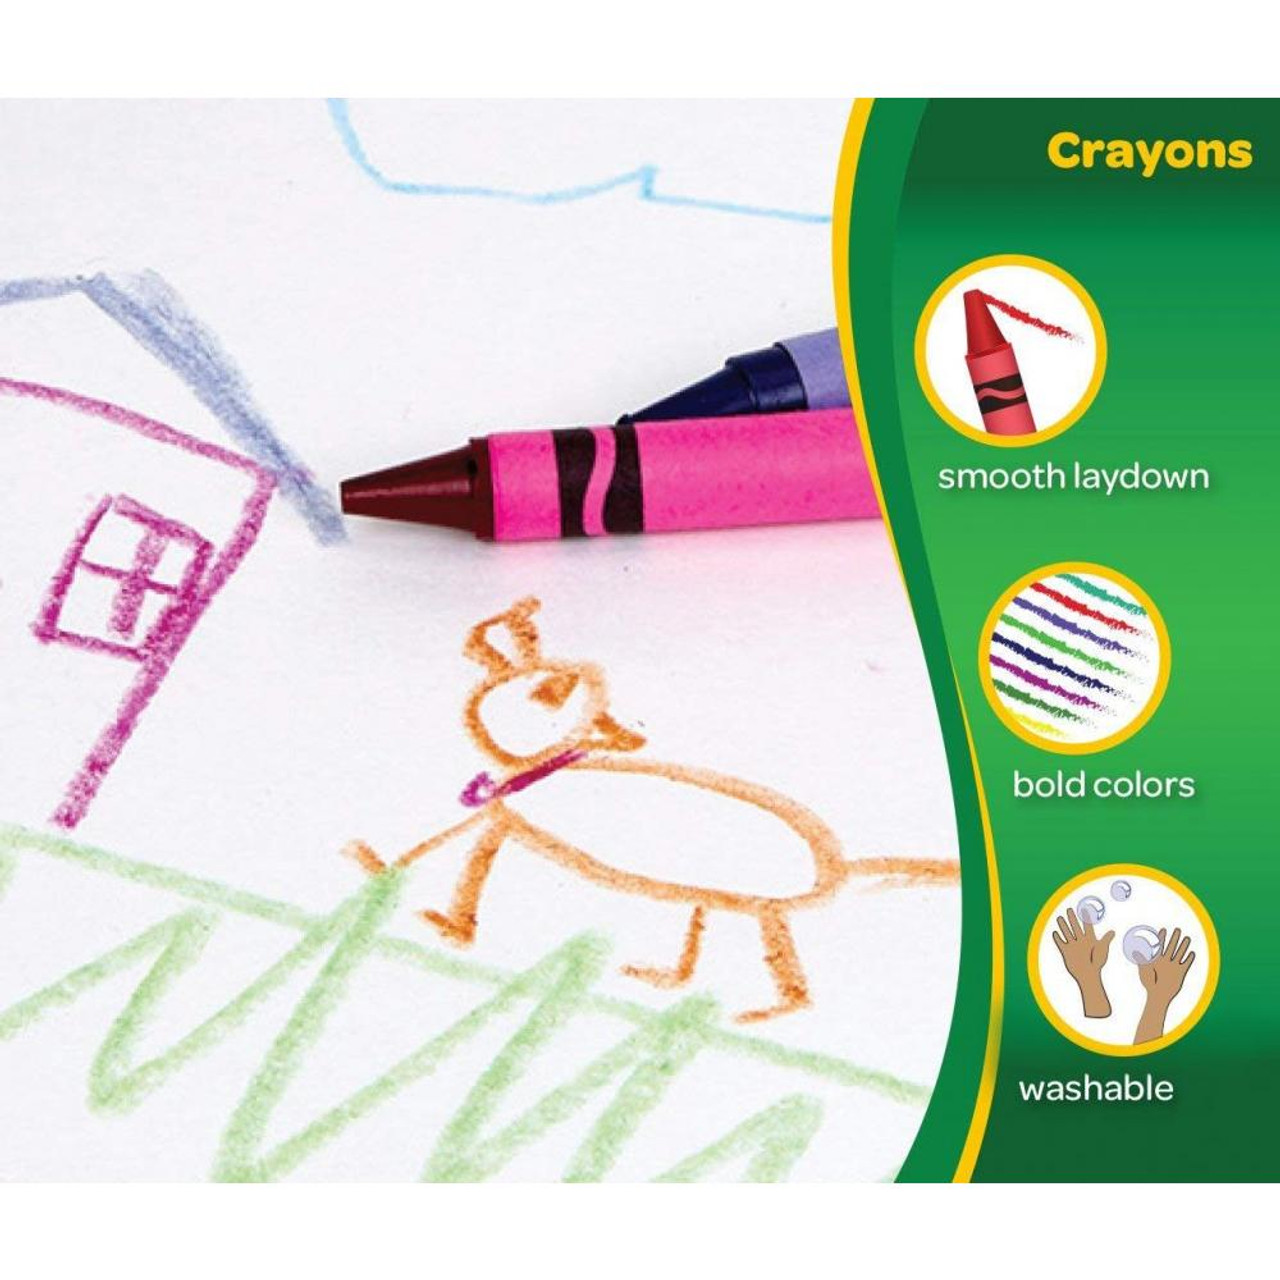 Crayola Classic Crayons Featuring Bluetiful, 24 Count  - *Ships from Miami*